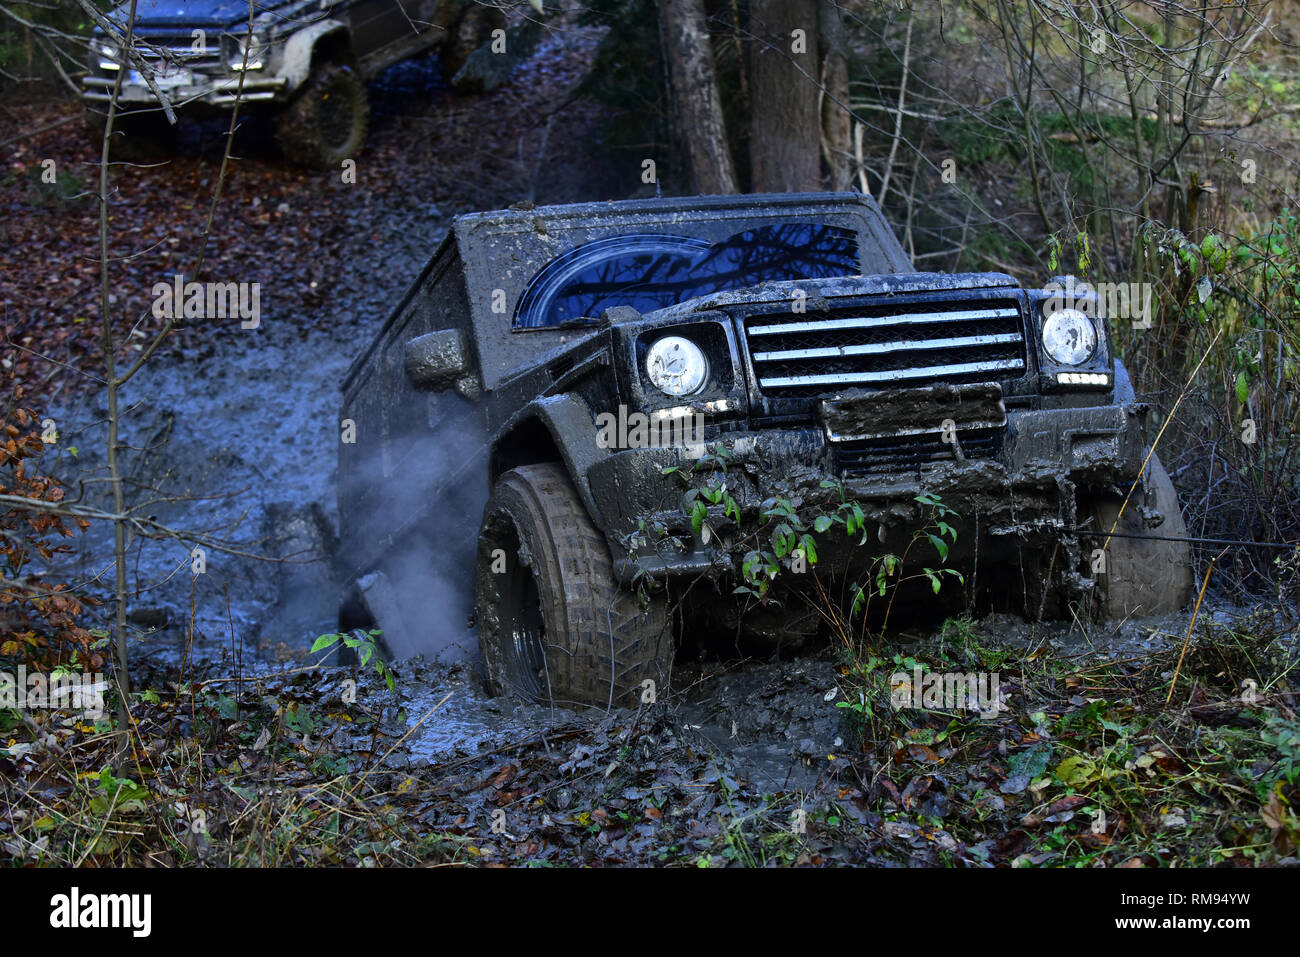 Dirty offroad car rides with obstacles in forest area. - Stock Image